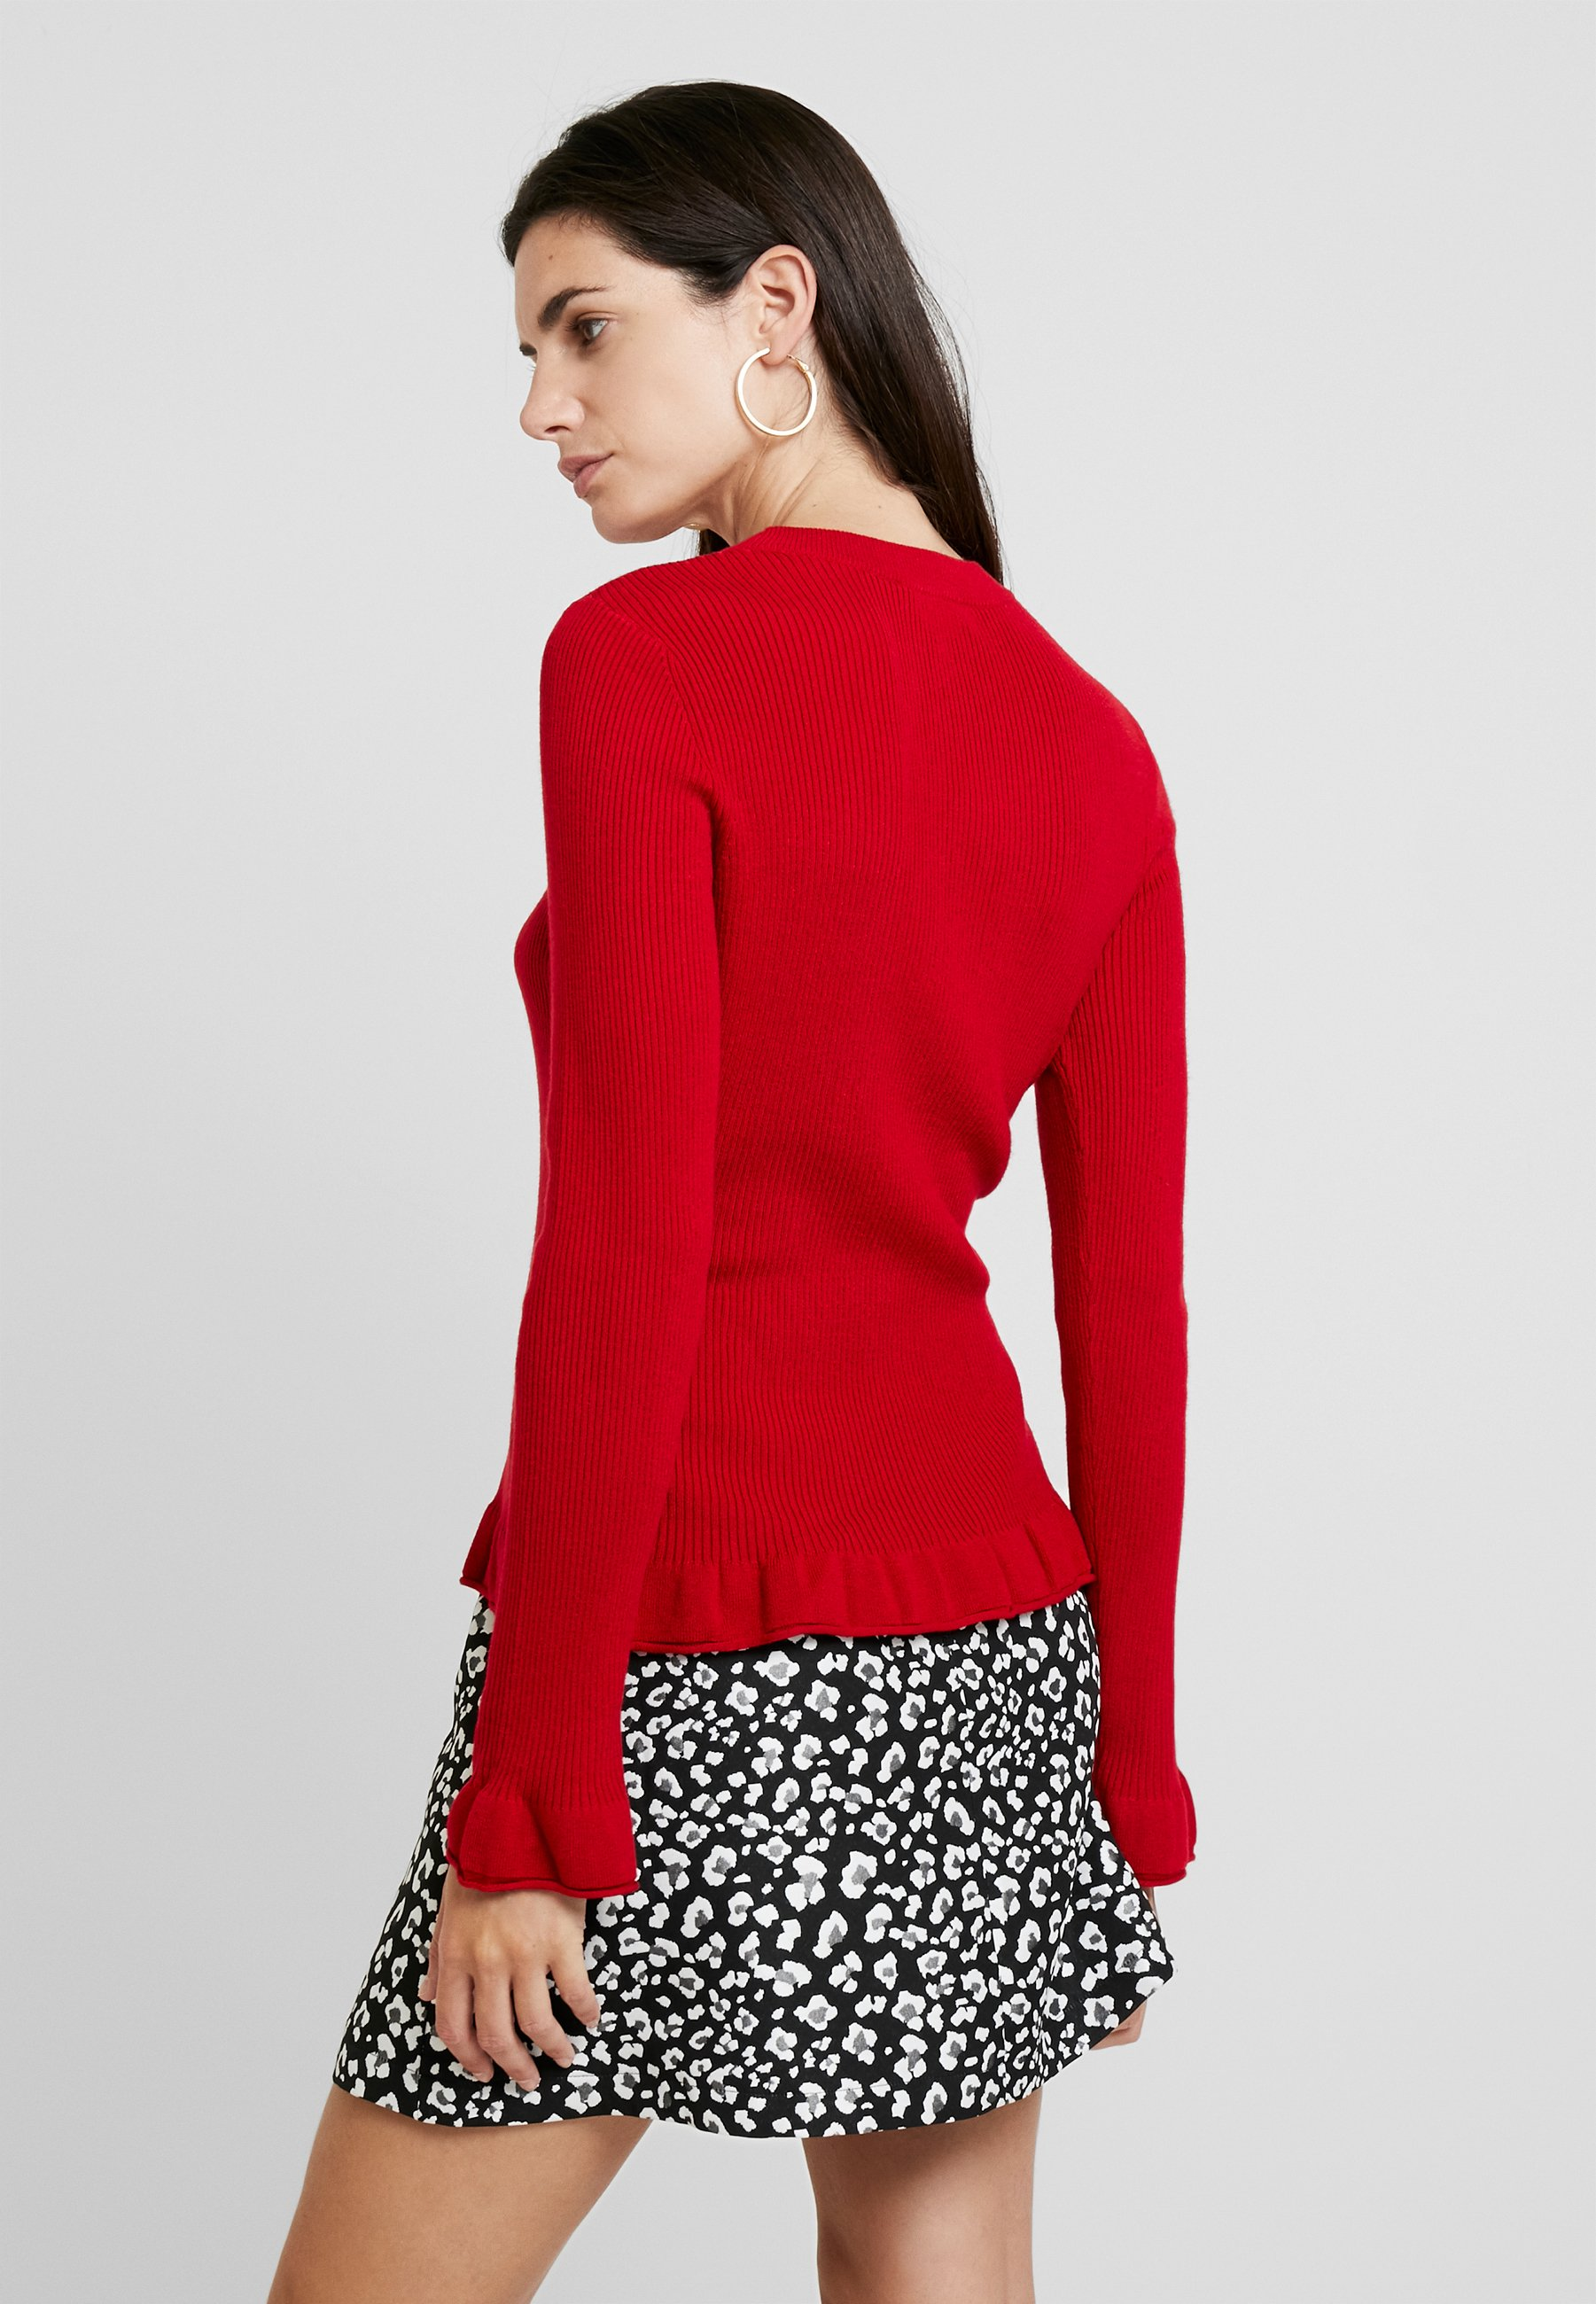 one more story Jersey de punto salsa red